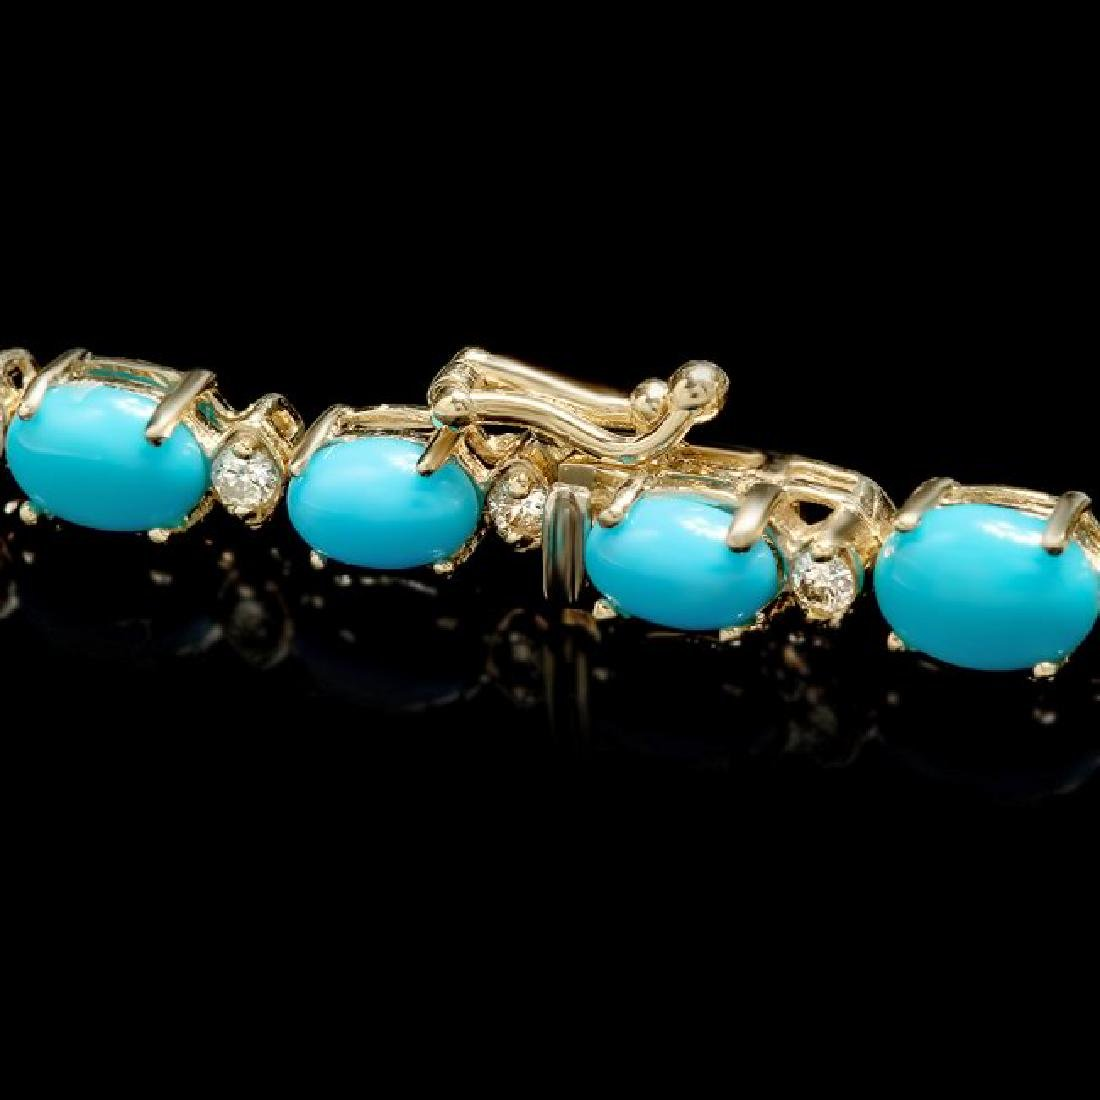 14k 12.00ct Turquoise 0.70ct Diamond Bracelet - 3